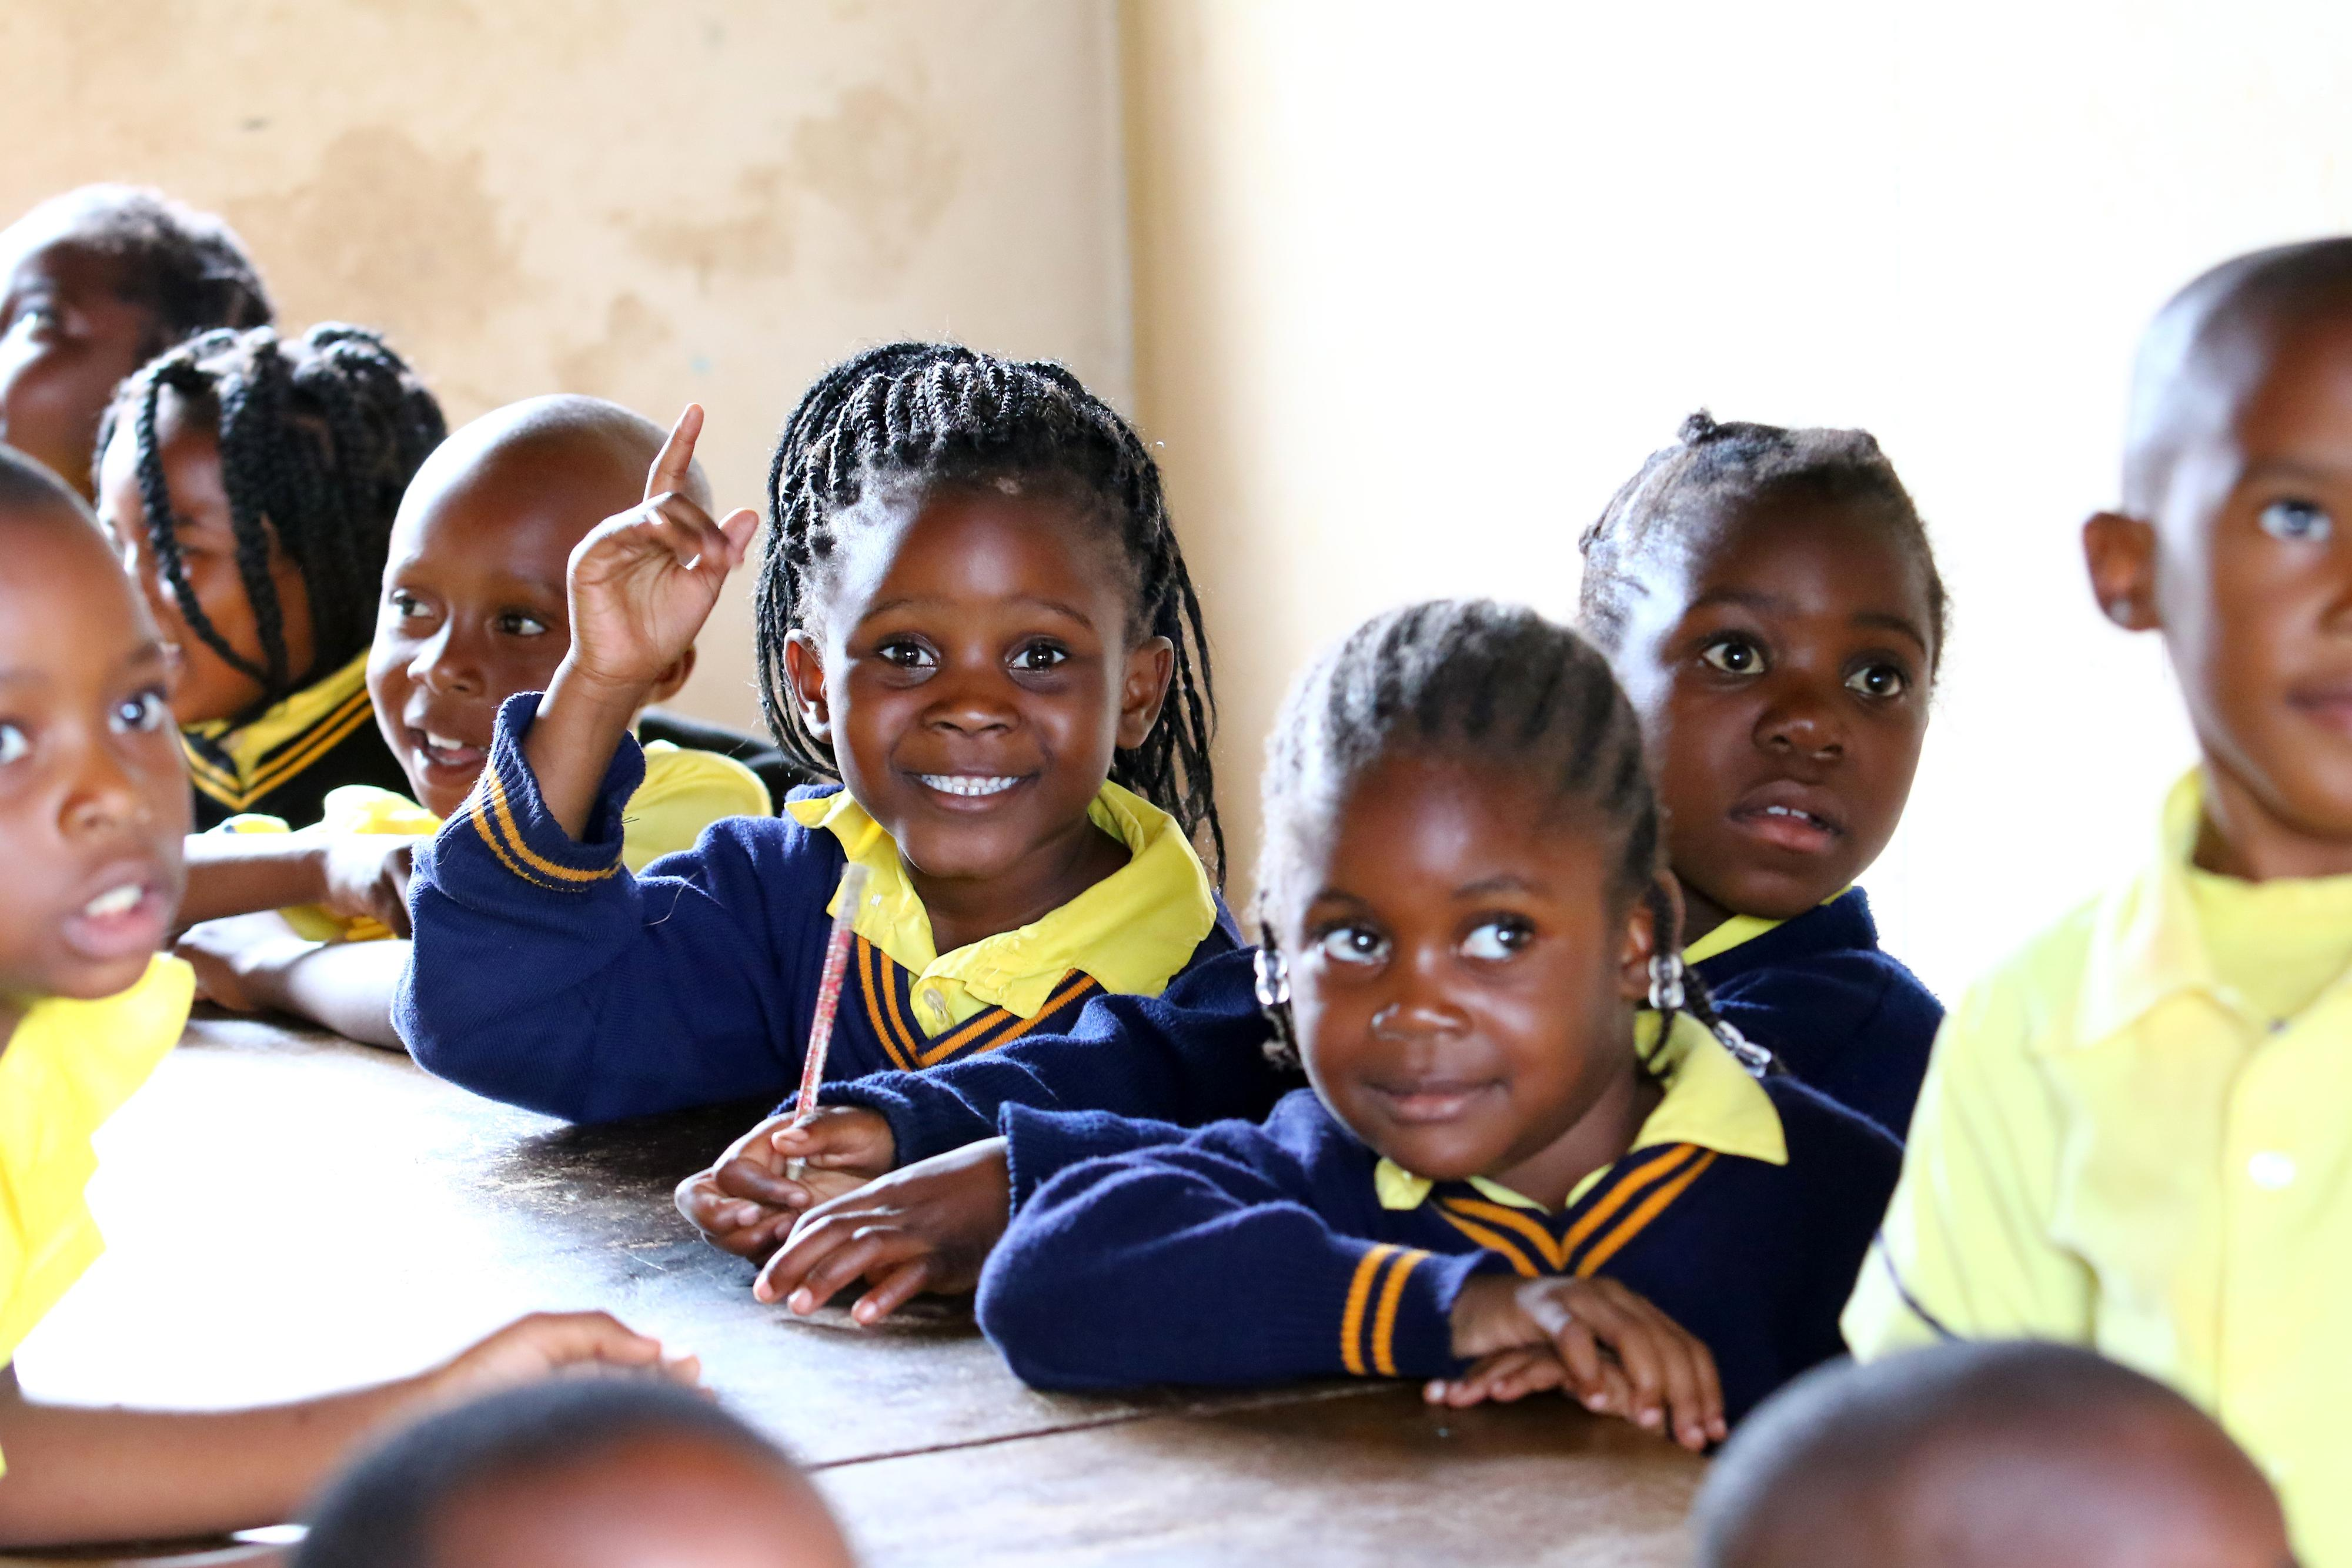 Photo of smiling school children in Zambia